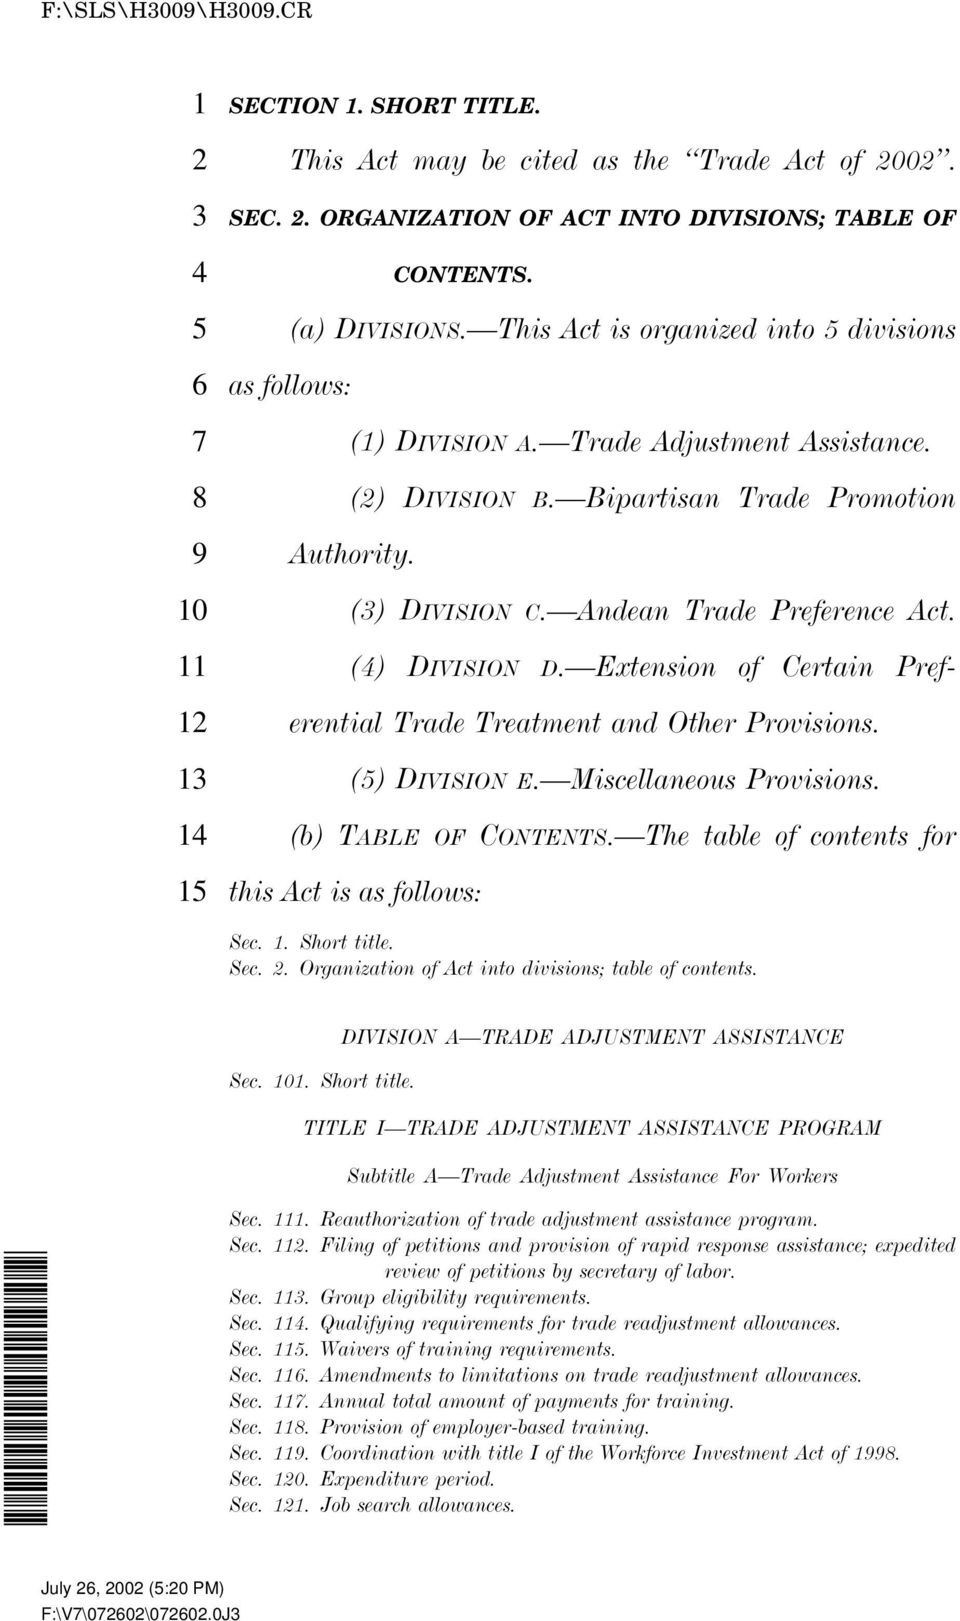 () DIVISION D. Extension of Certain Preferential Trade Treatment and Other Provisions. () DIVISION E. Miscellaneous Provisions. (b) TABLE OF CONTENTS.